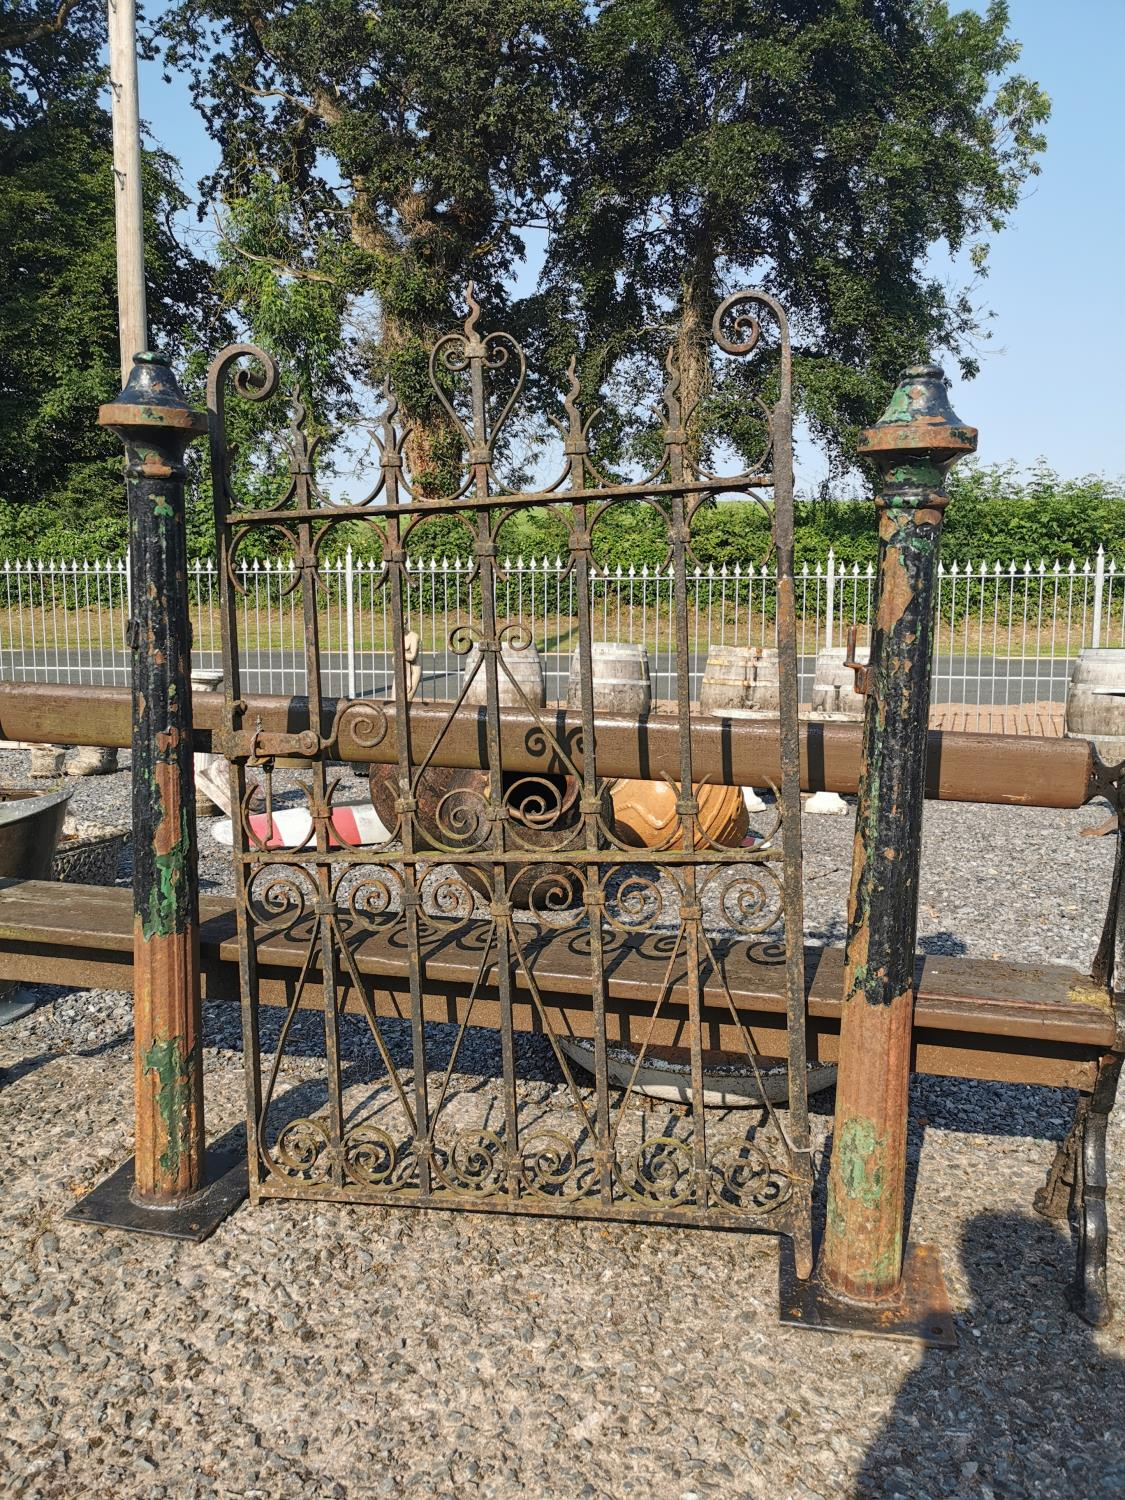 Cast iron garden gate and posts.